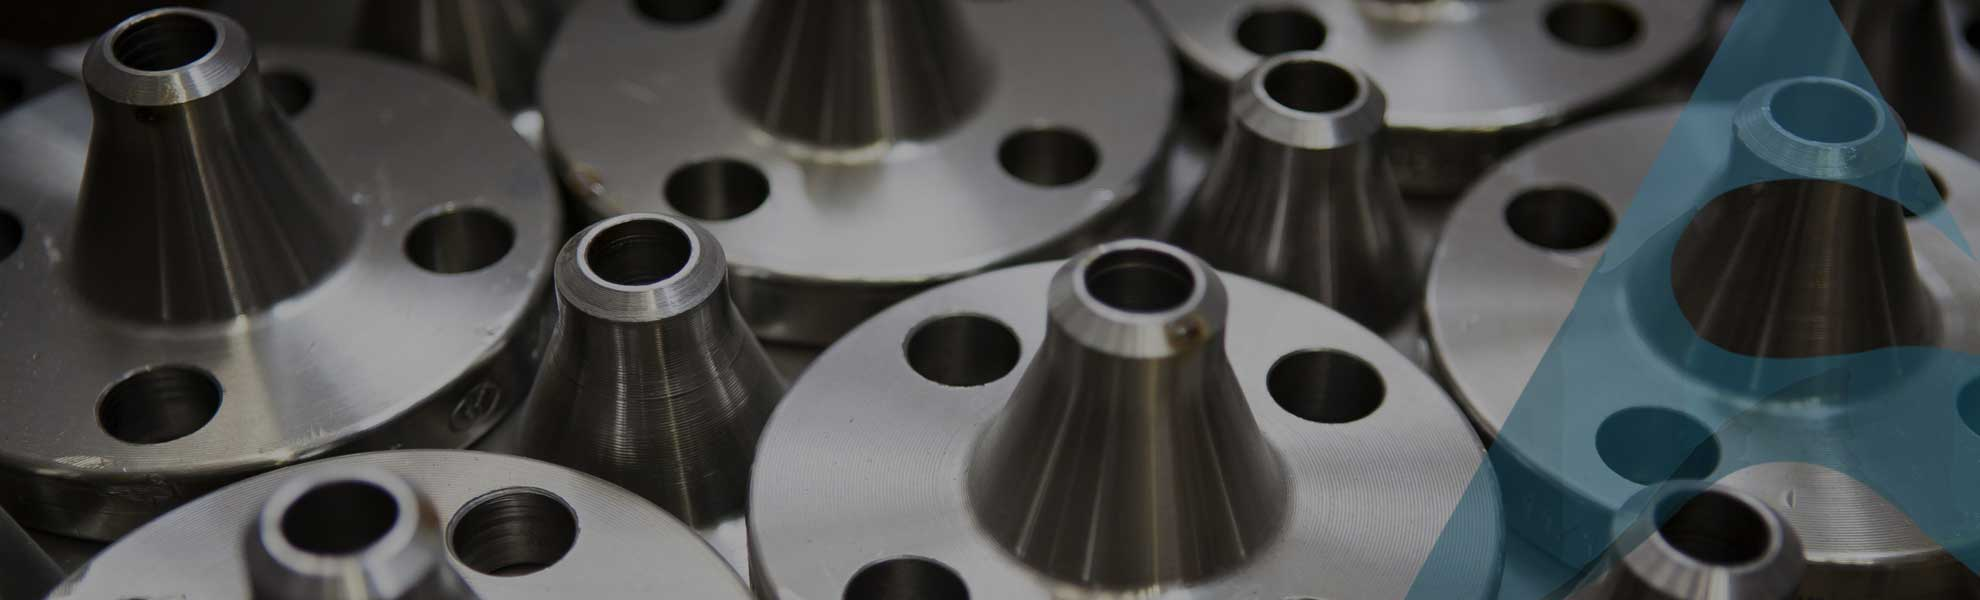 India's Leading Supplier of Stainless Steel Products